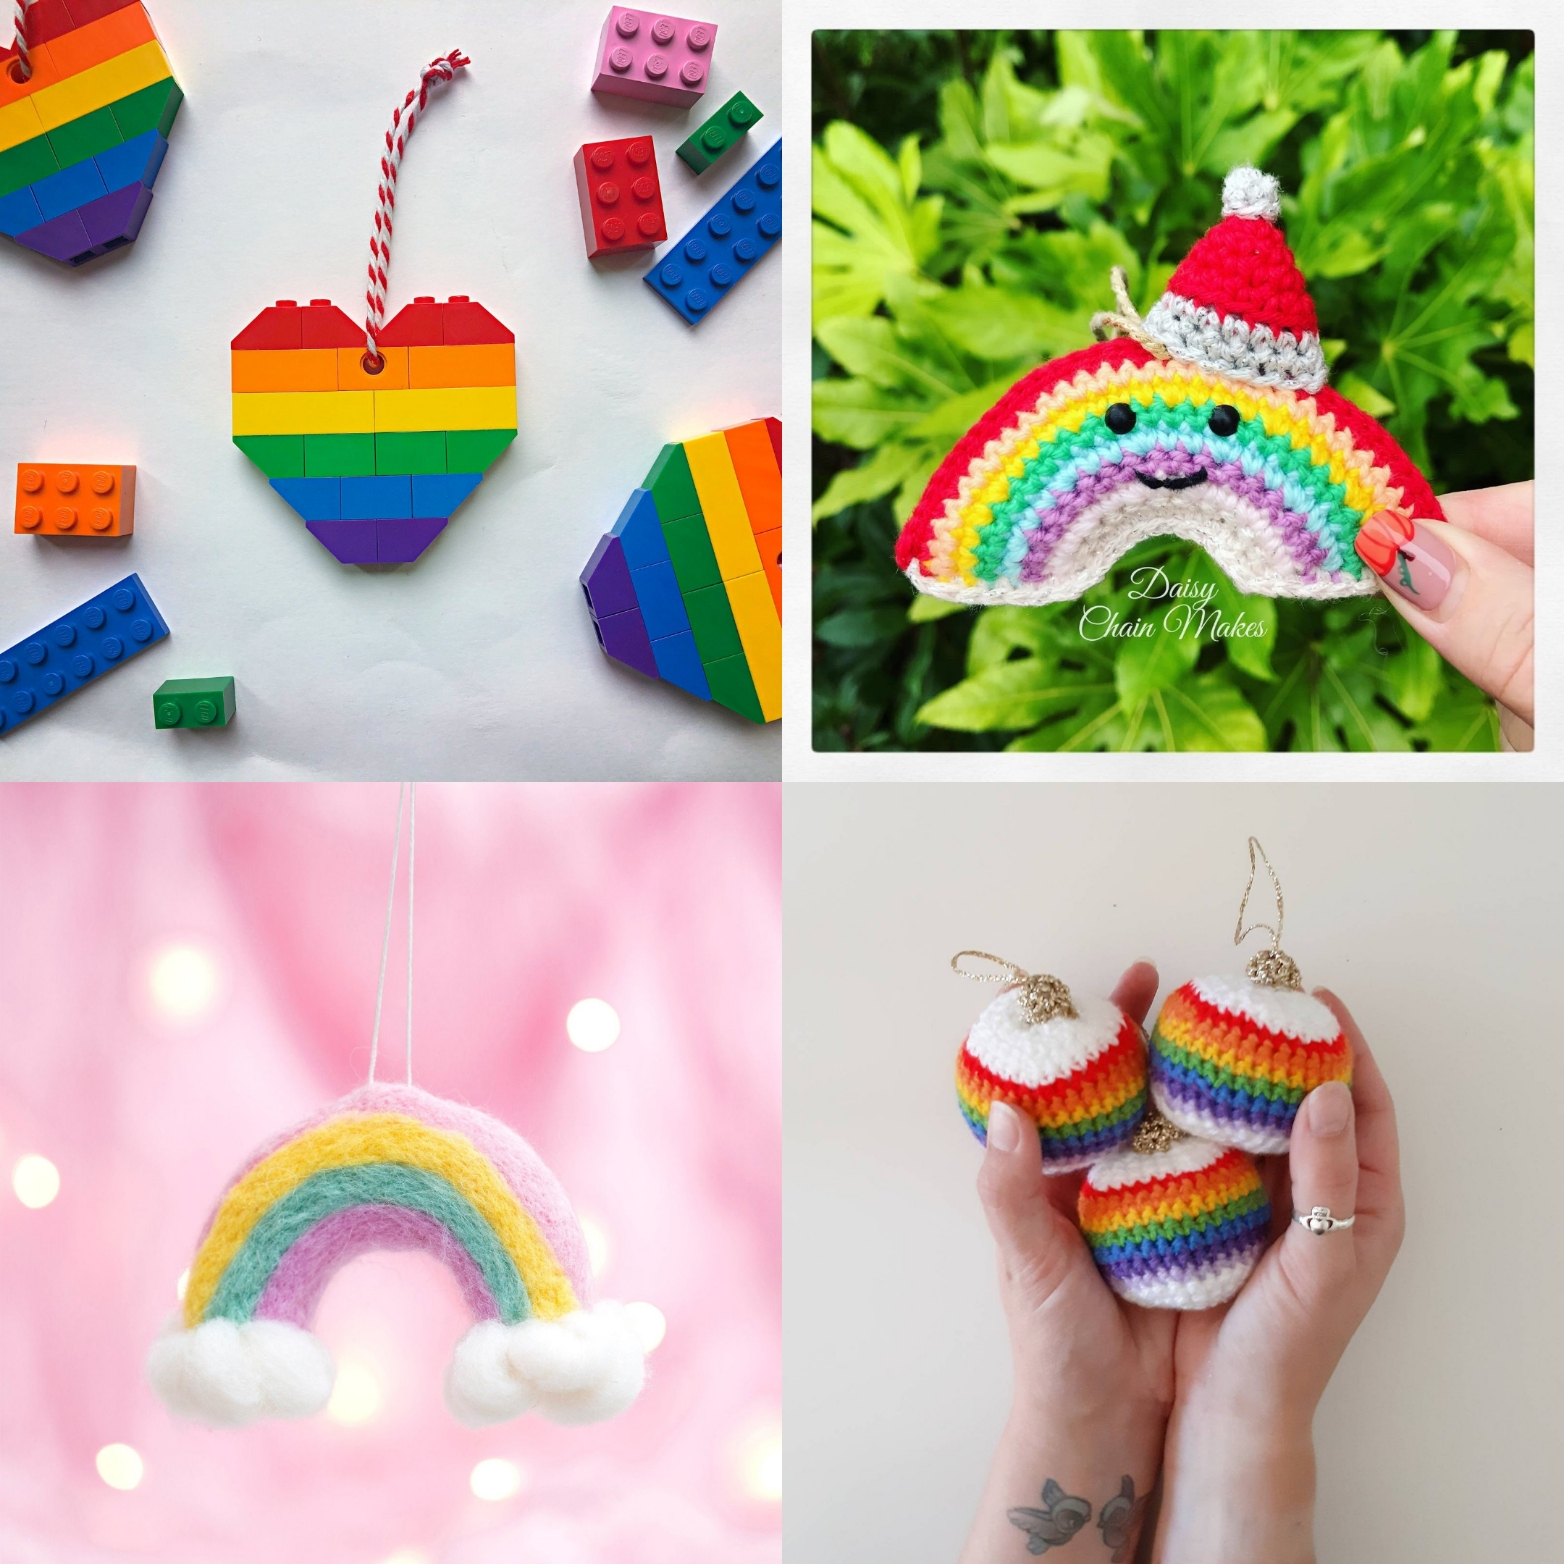 Merry rainbow Christmas Etsy tree decorations | Hello! Hooray!